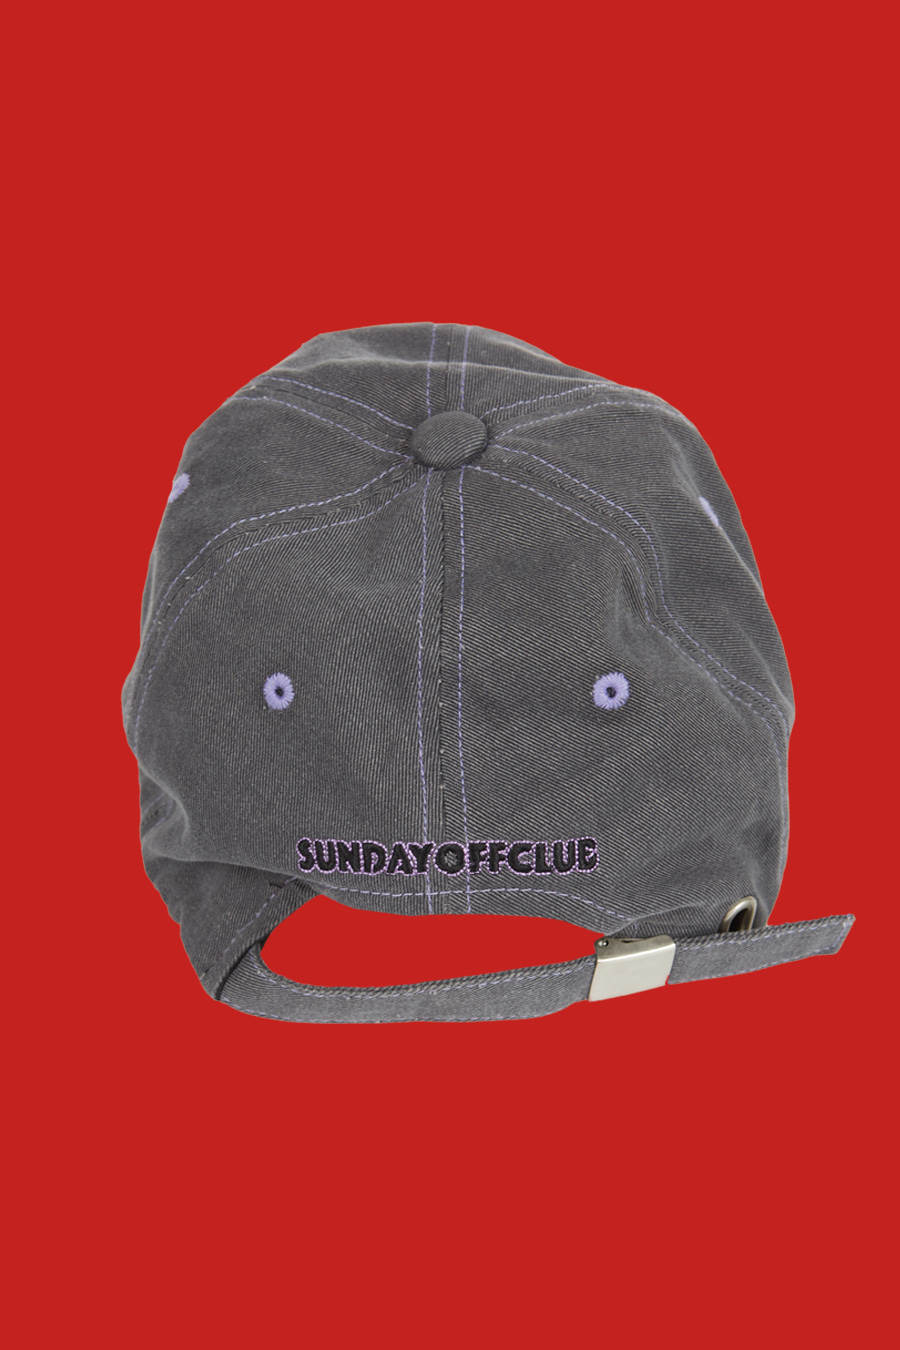 Guns On Me Ball Cap - Grey Violet